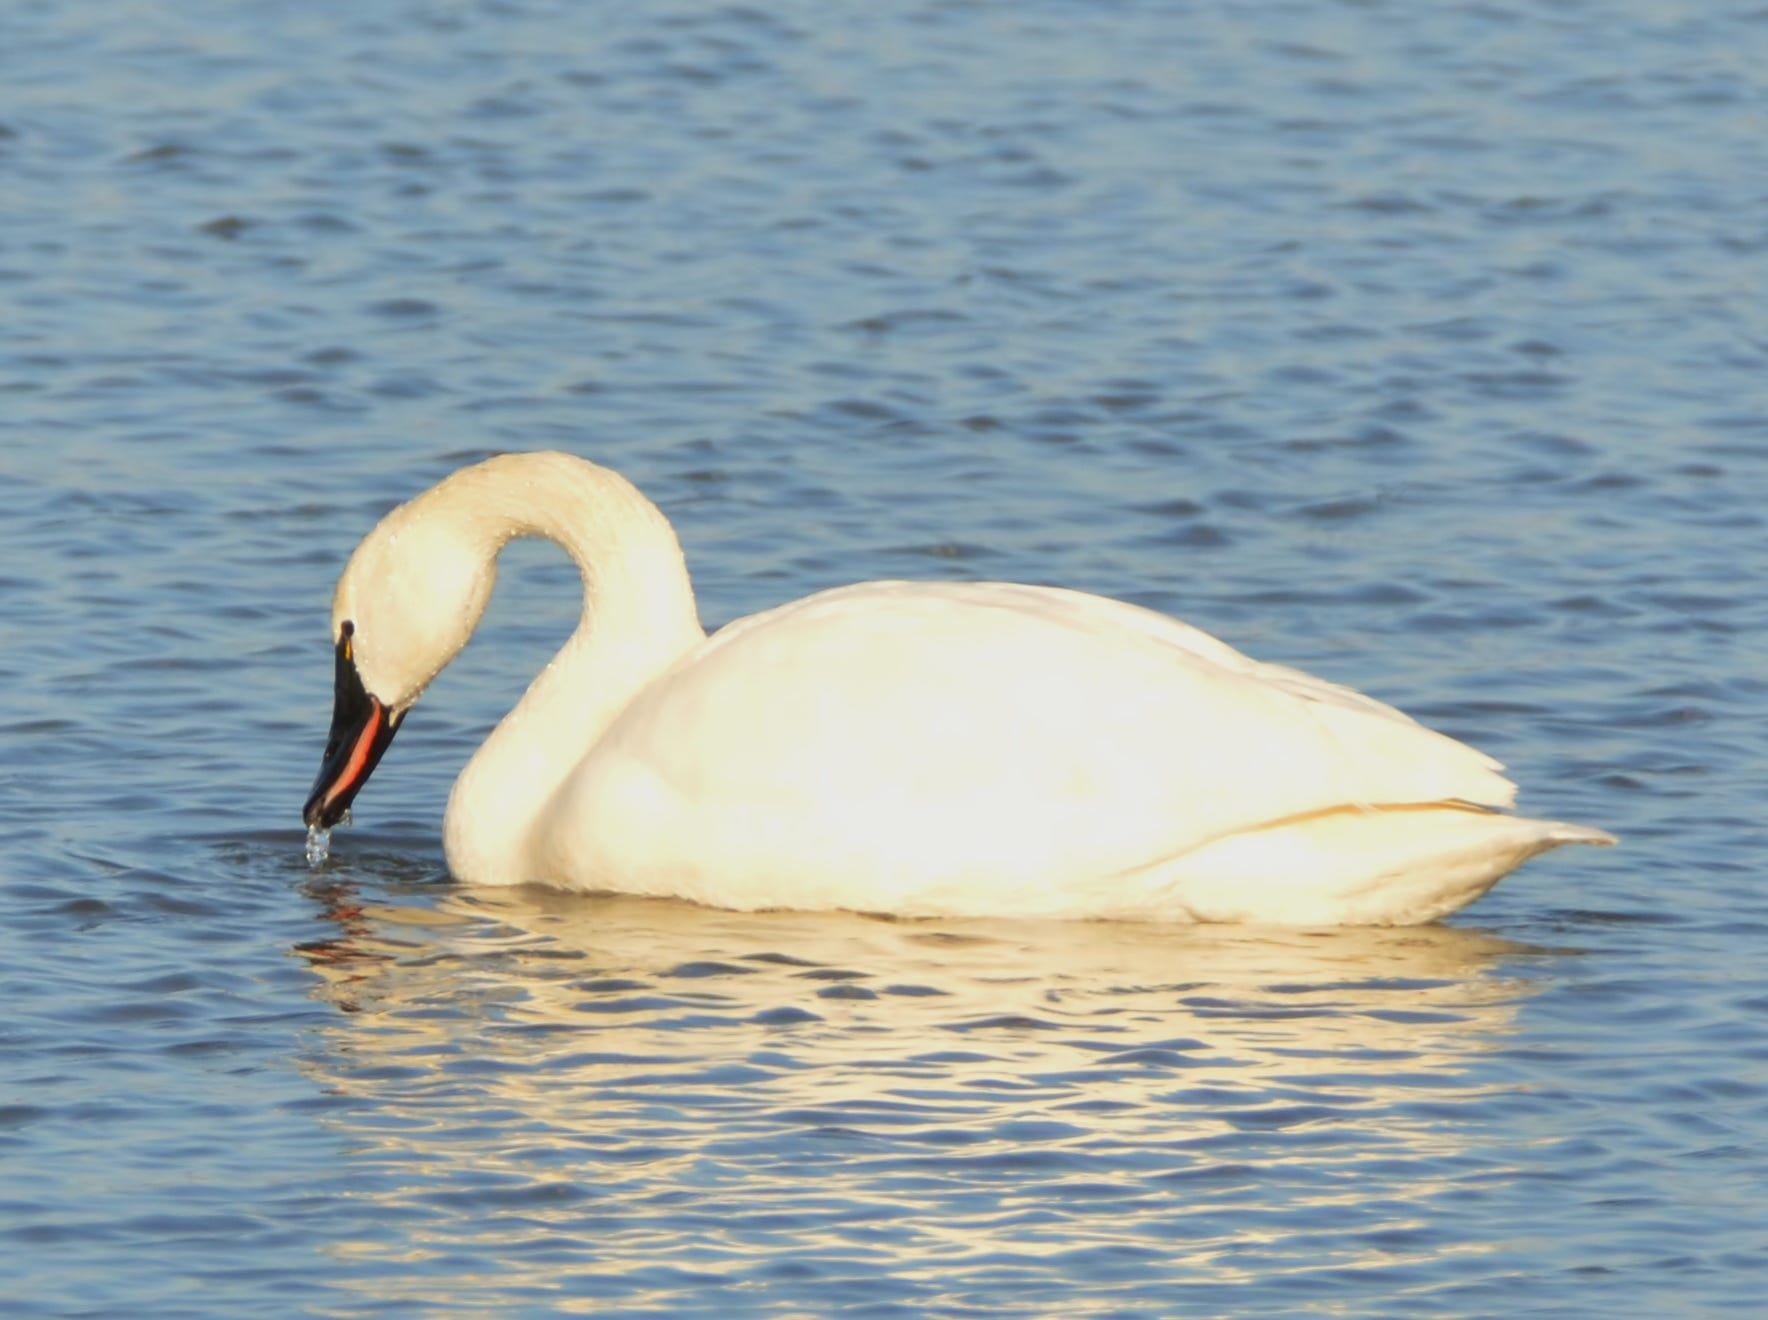 A tundra swan dips its beak in the water at Middle Creek.